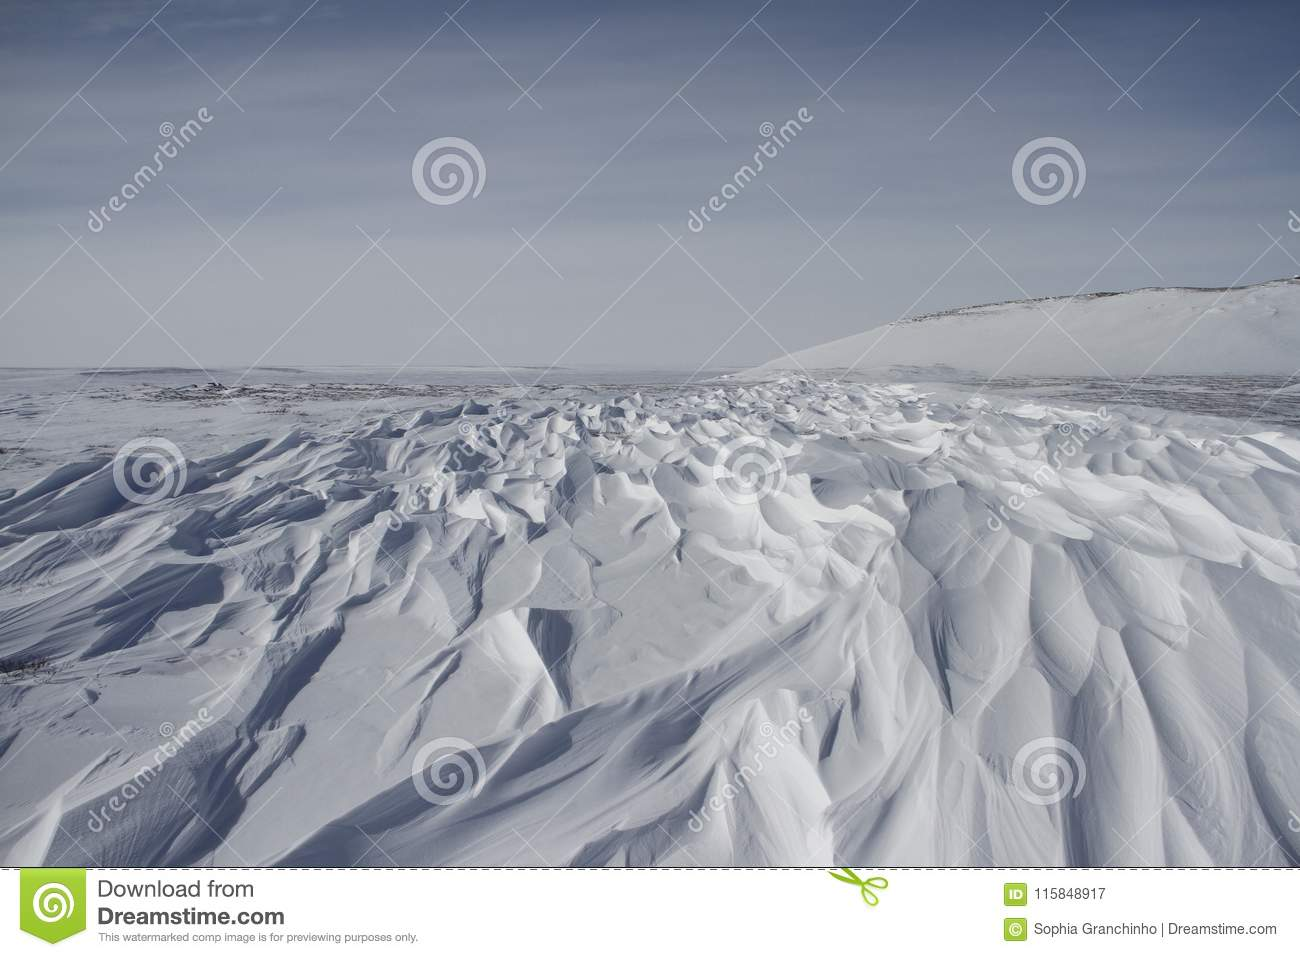 Beautiful patterns of sastrugi, parallel wavelike ridges caused by winds on surface of hard snow